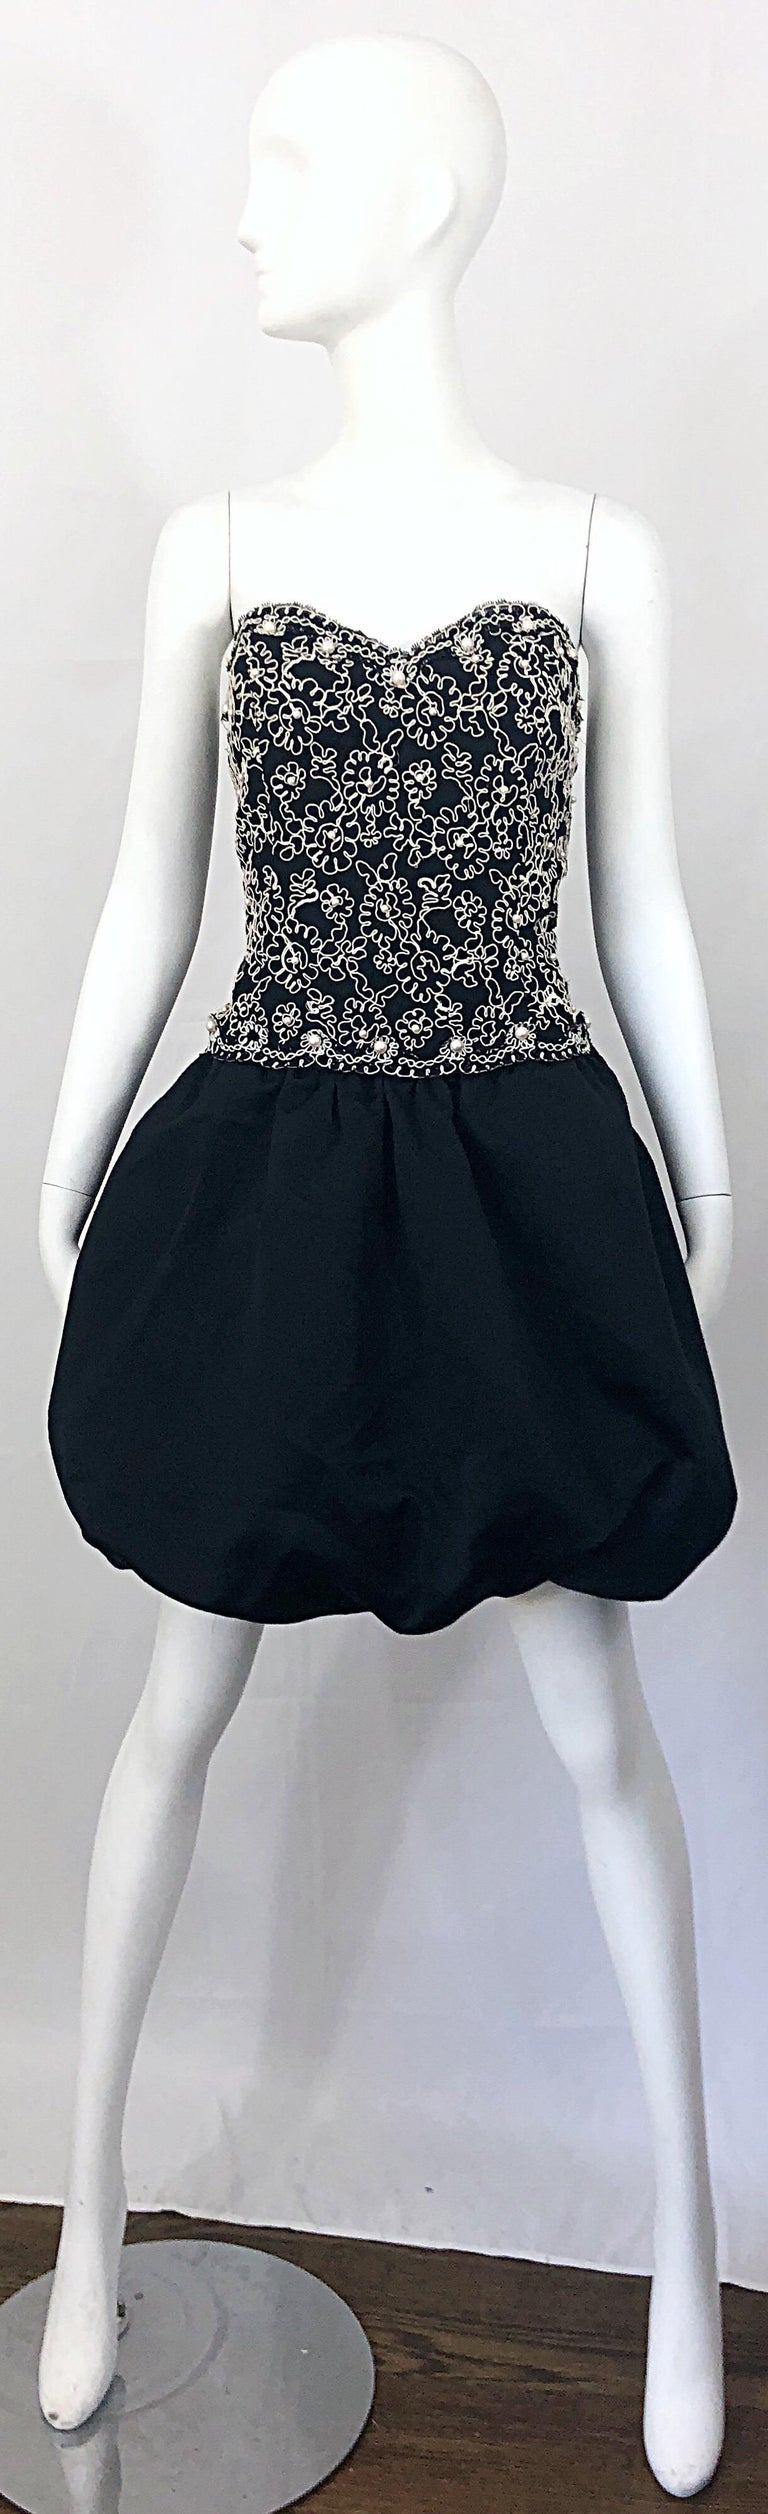 Chic 1980s Size 12 Strapless Pearl Encrusted Black and White Pouf Vintage Dress For Sale 12